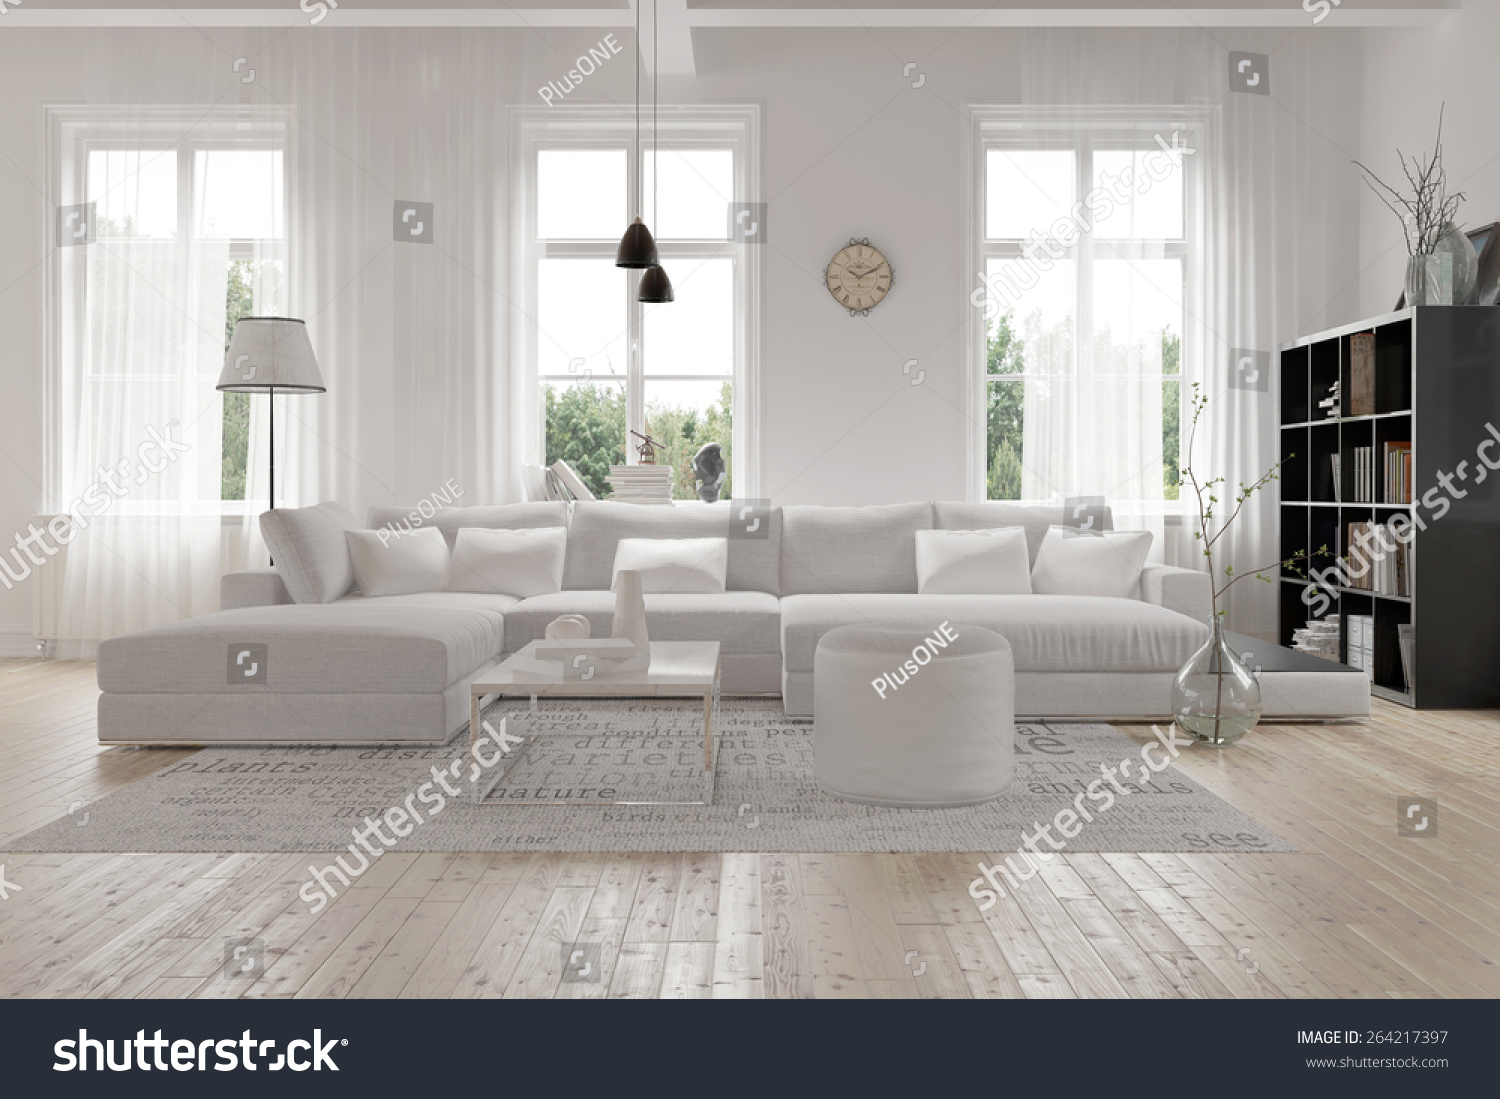 Modern spacious lounge living room interior stock for Interior design images lounge